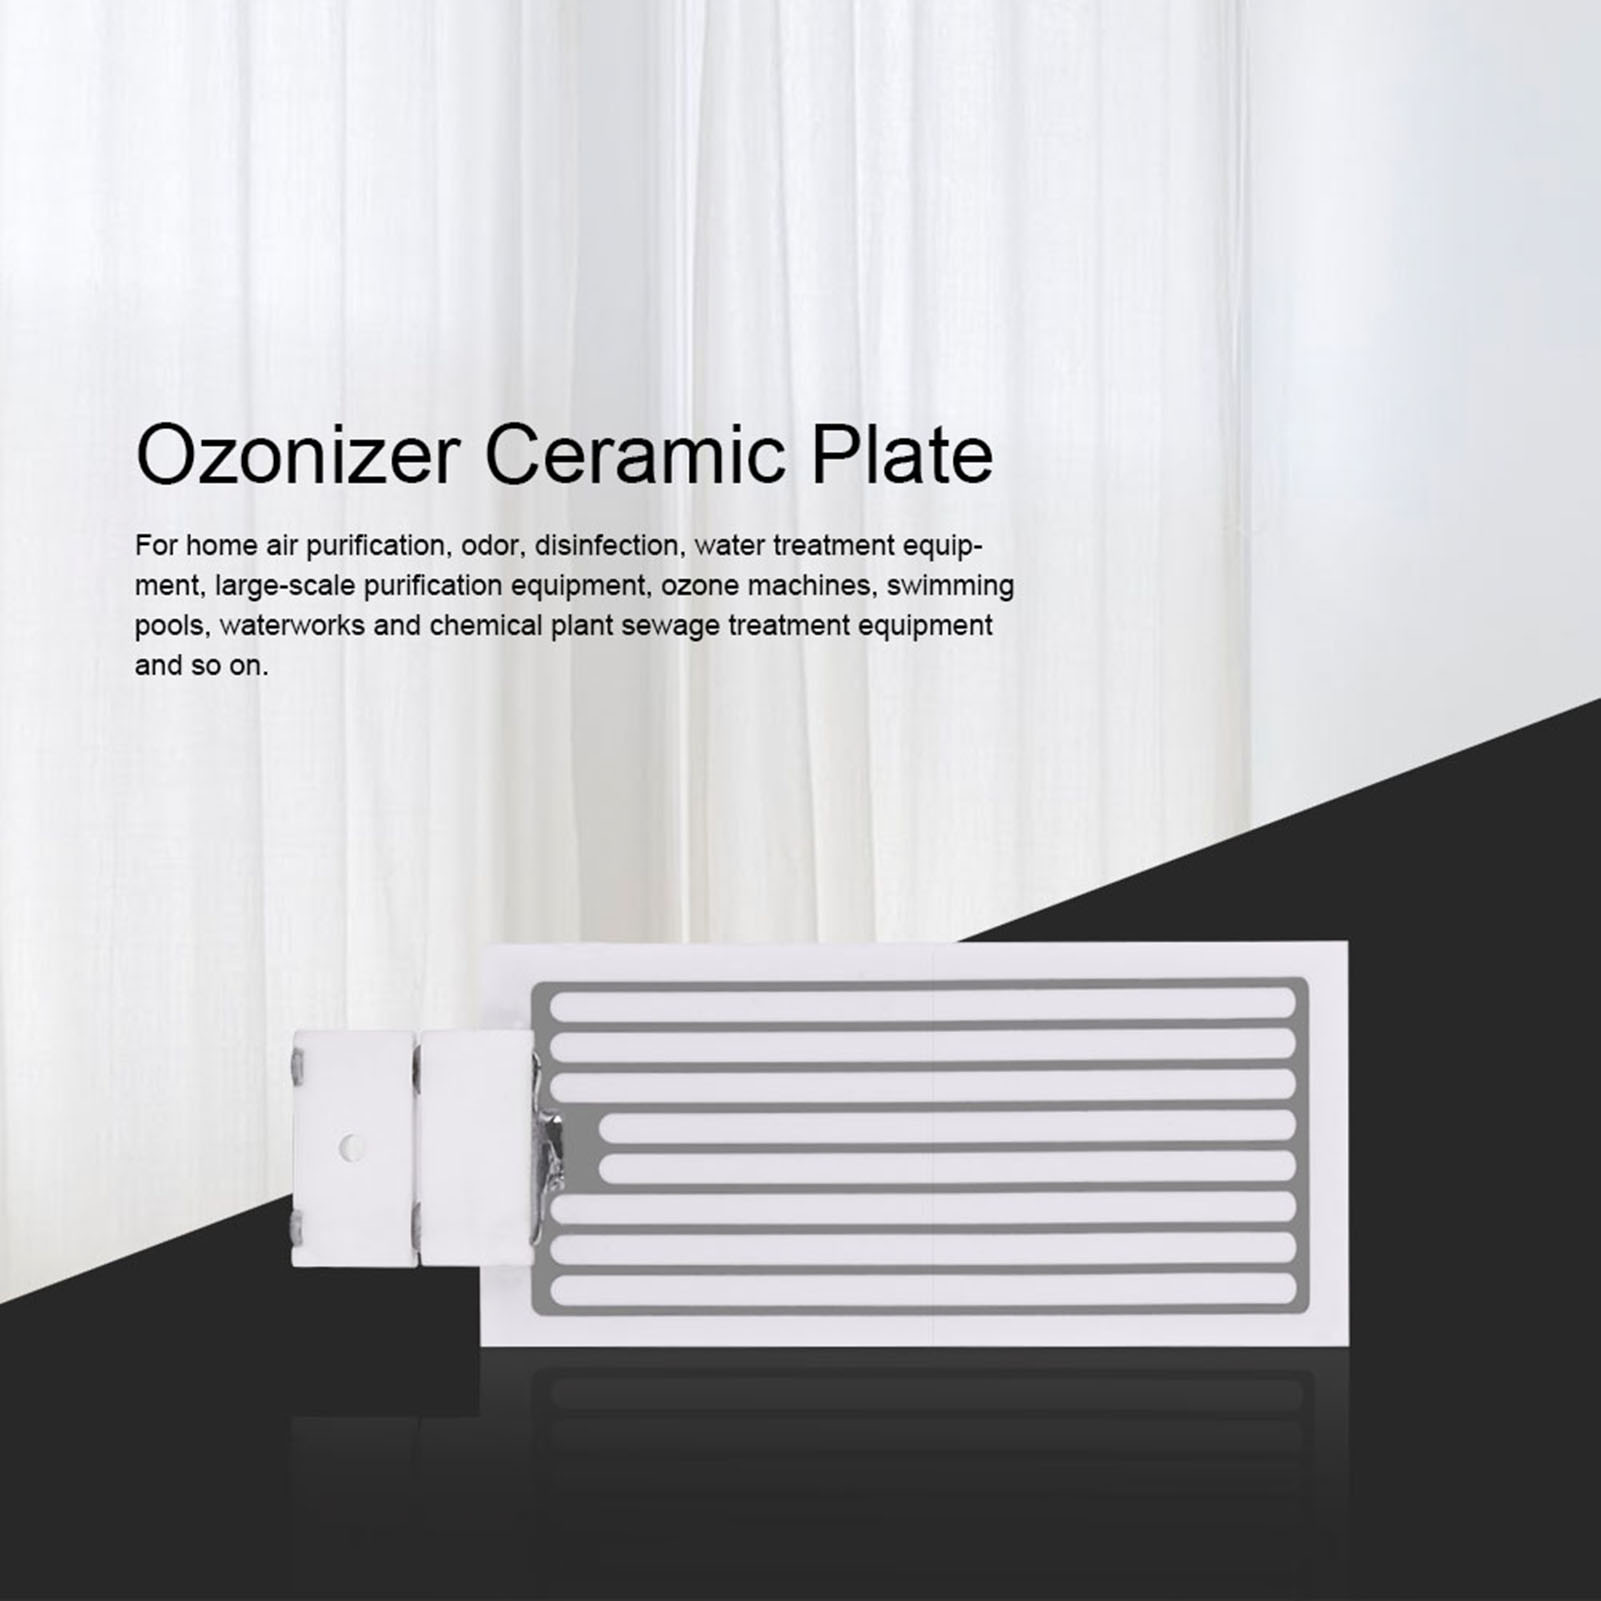 Ceramic-Plate-With-Ceramic-Base-For-10000-Hours-3-5g-5g-10g-Ozone-Generator-New thumbnail 14